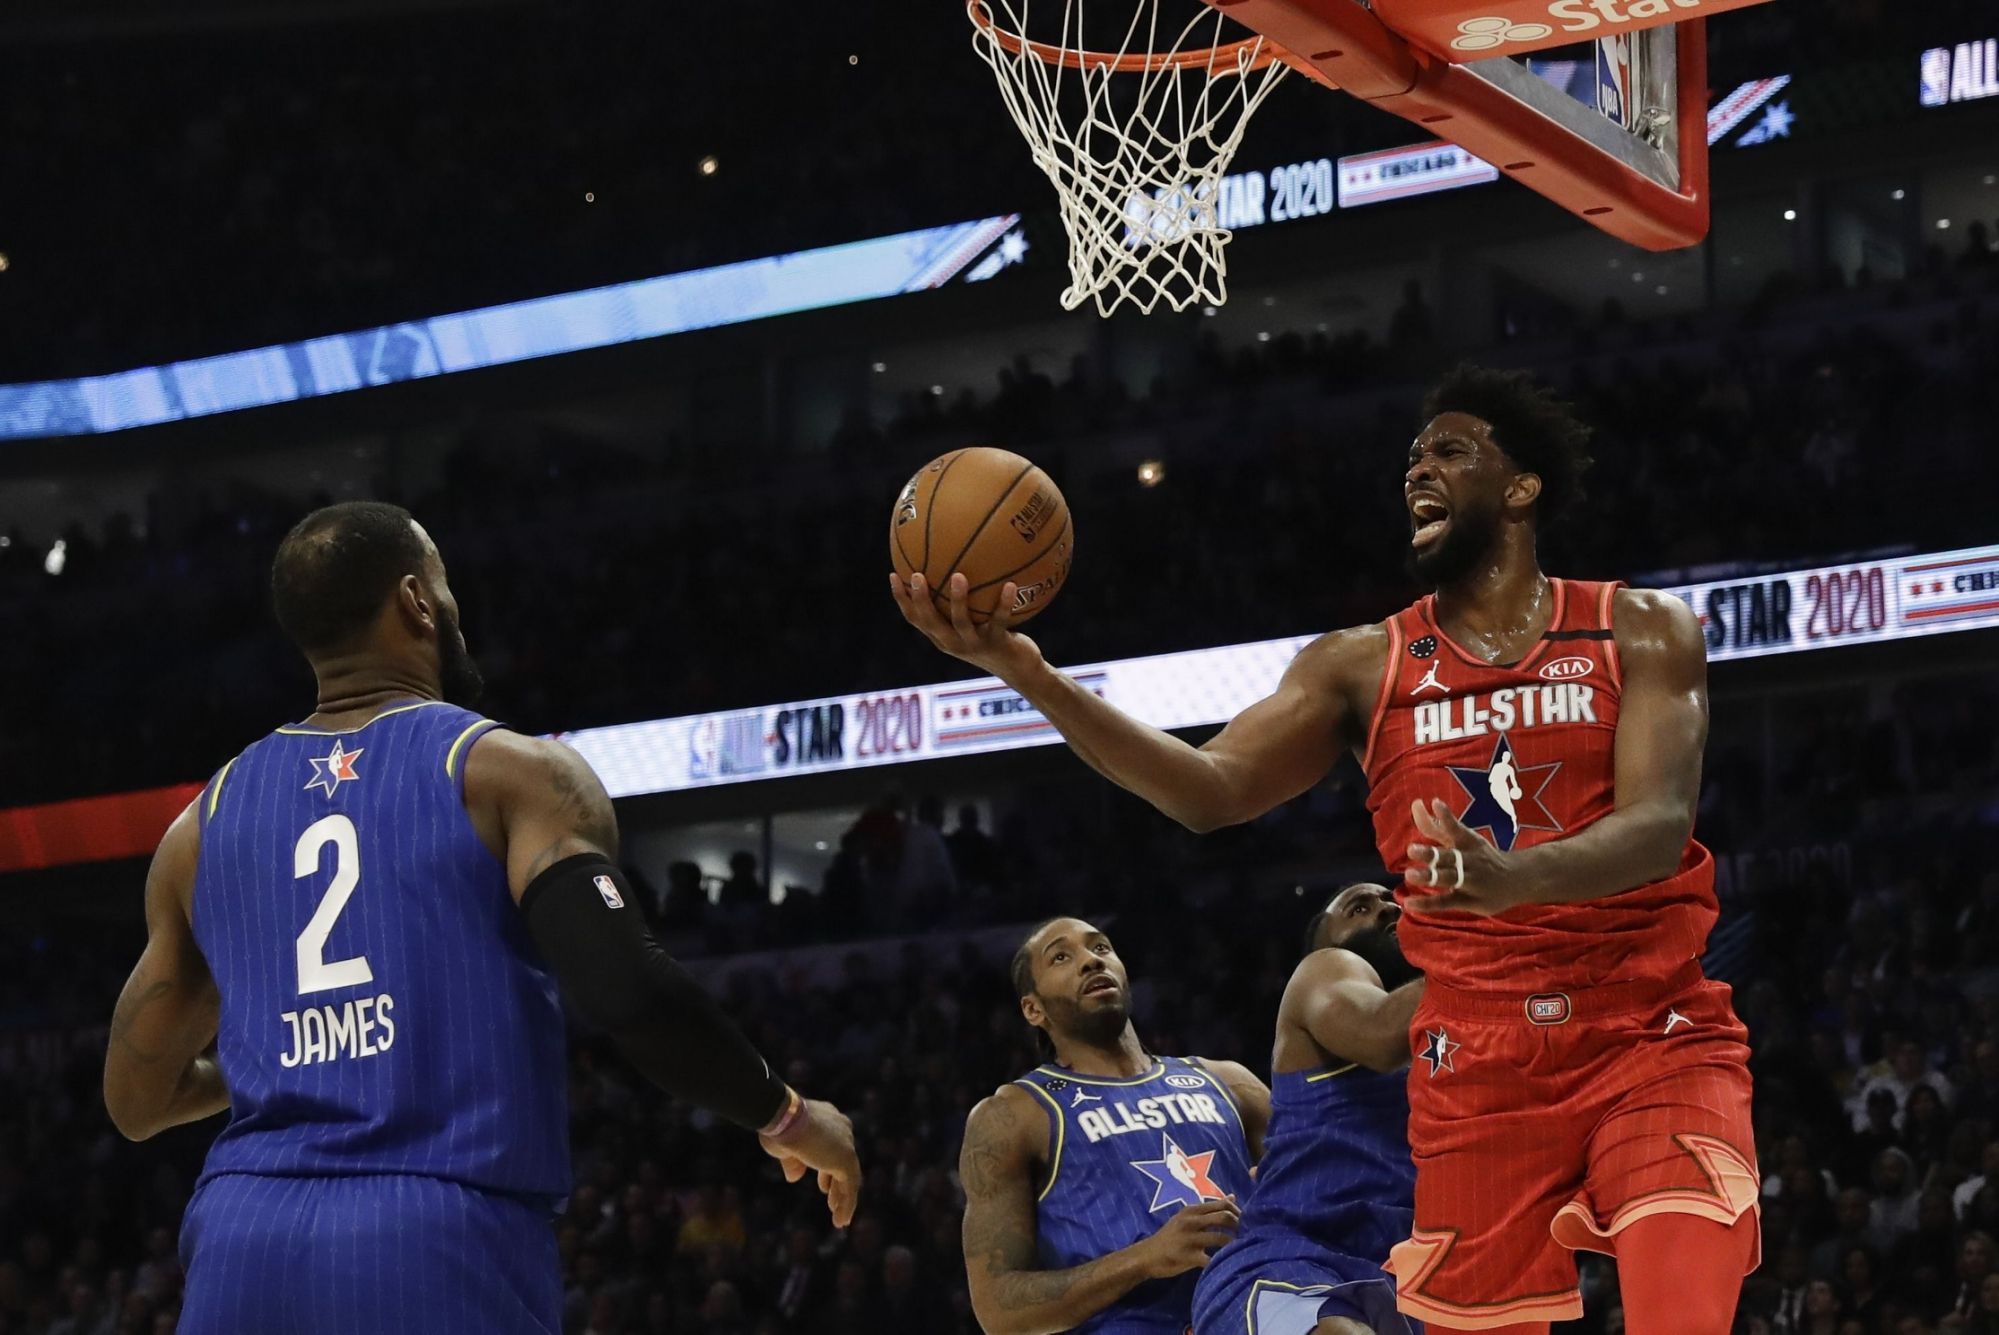 nba-says-all-star-will-benefit-black-colleges,-covid-relief